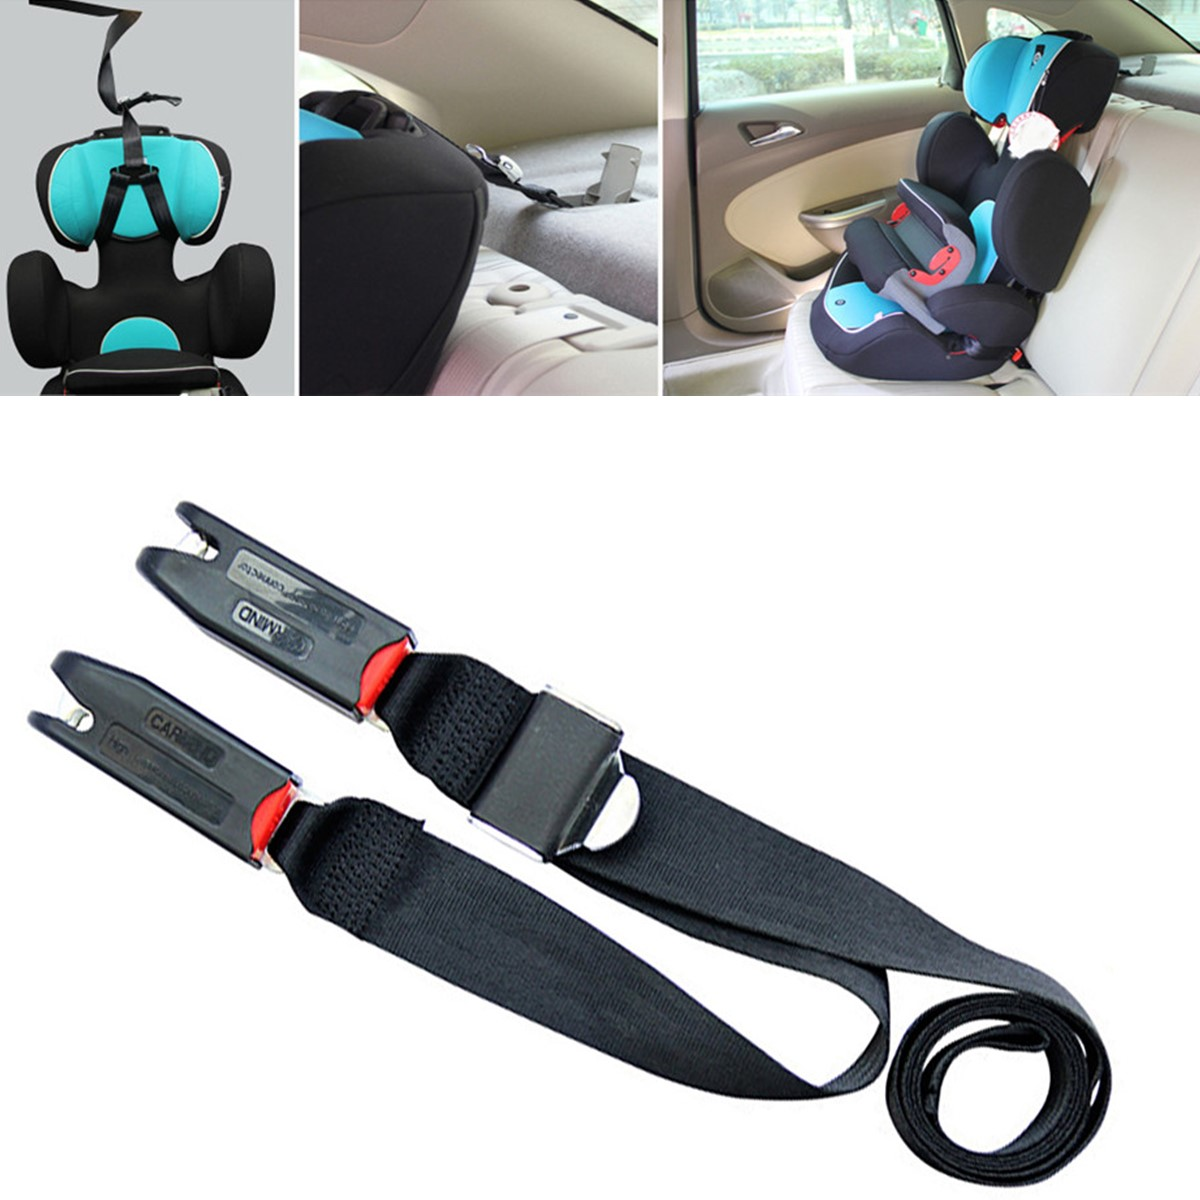 isofix latch belt connector interface baby car seat anchor top tether bottom ebay. Black Bedroom Furniture Sets. Home Design Ideas